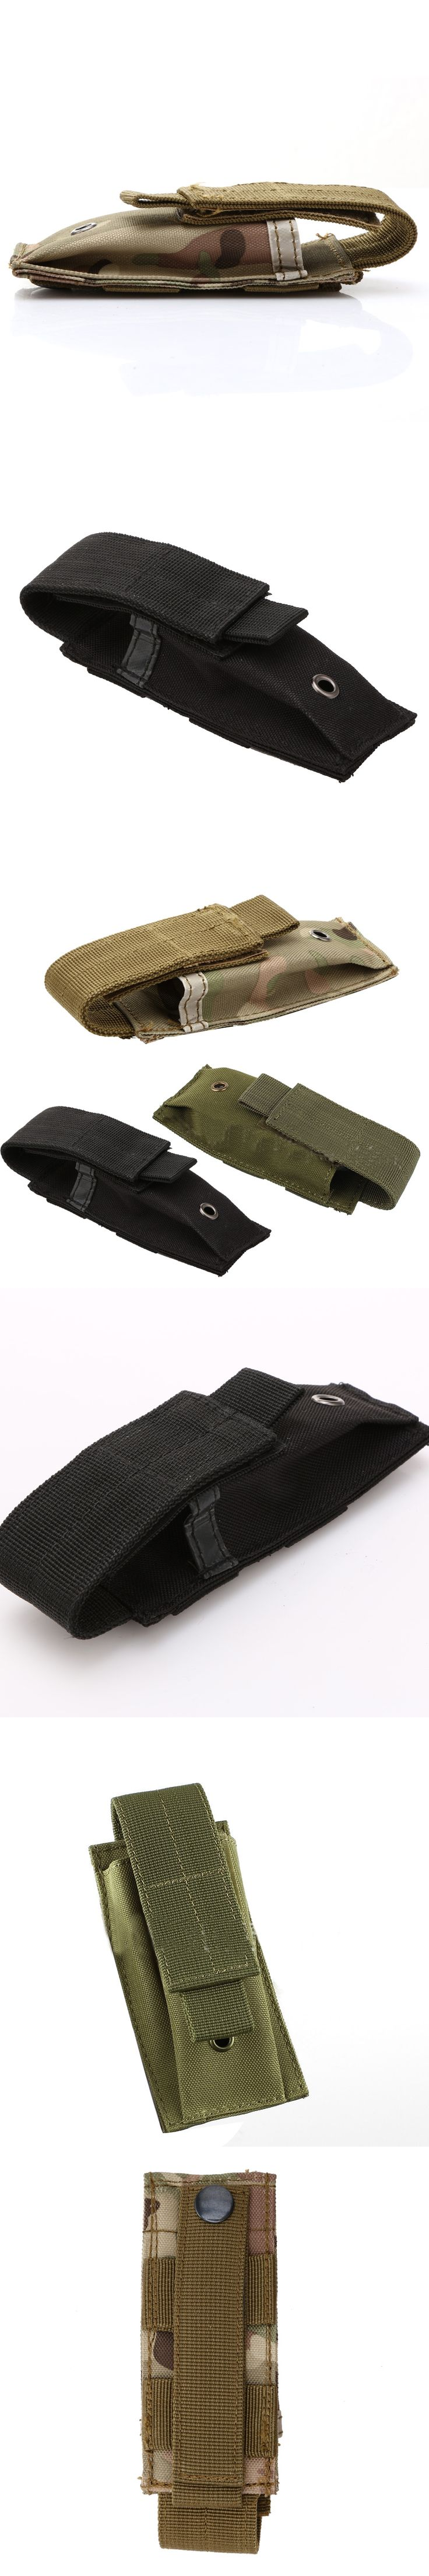 Military Tactical Single Pistol Magazine Pouch Knife Flashlight Sheath Airsoft Hunting Ammo Molle Pouch Multifunction Bags New